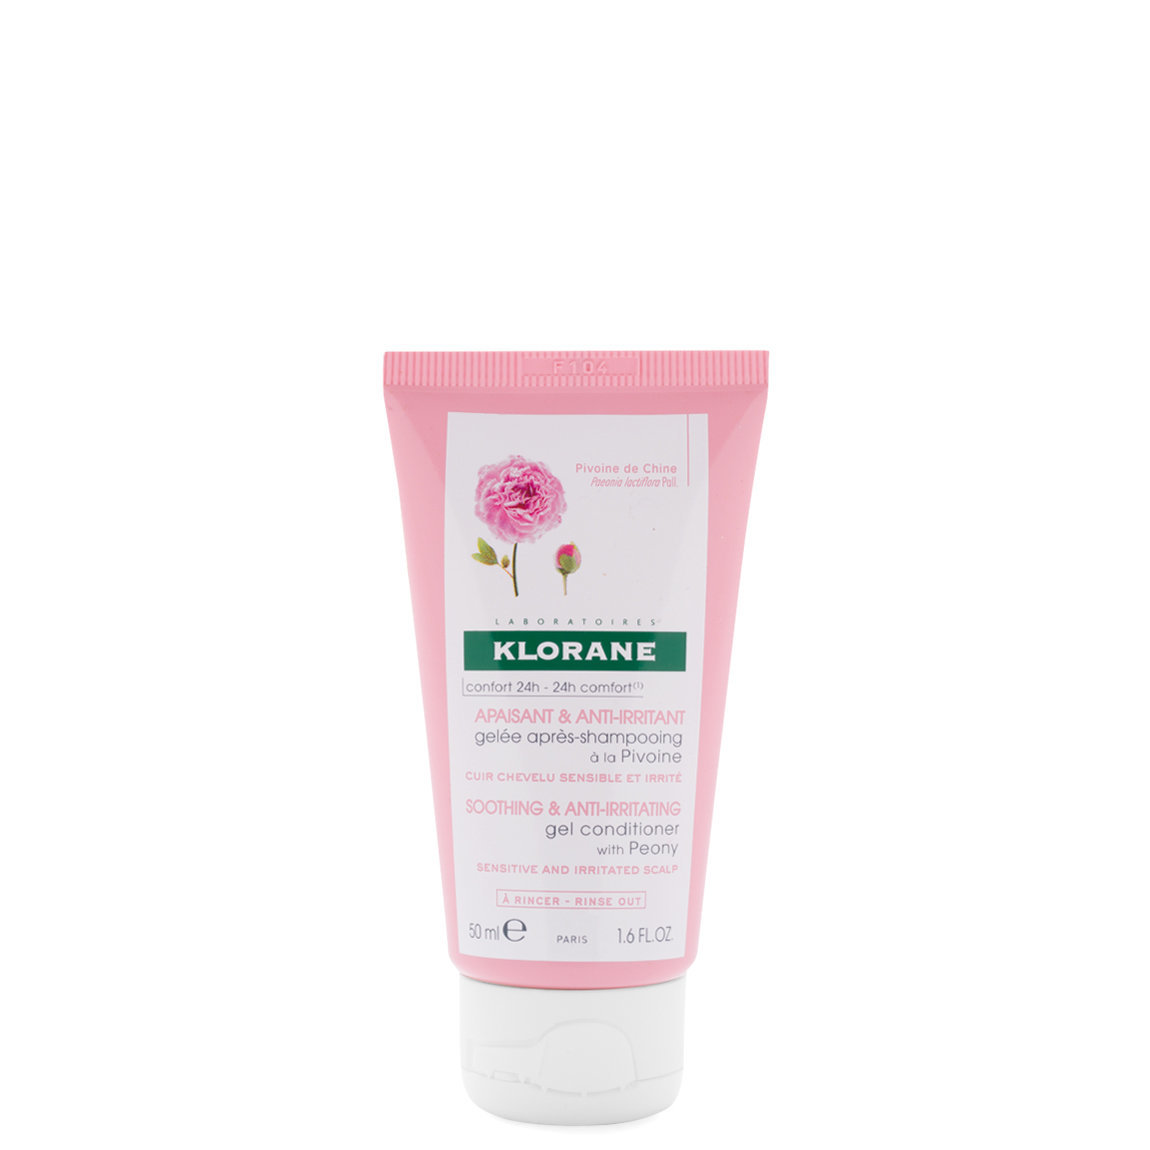 Klorane Gel Conditioner with Peony 1.6 oz product smear.